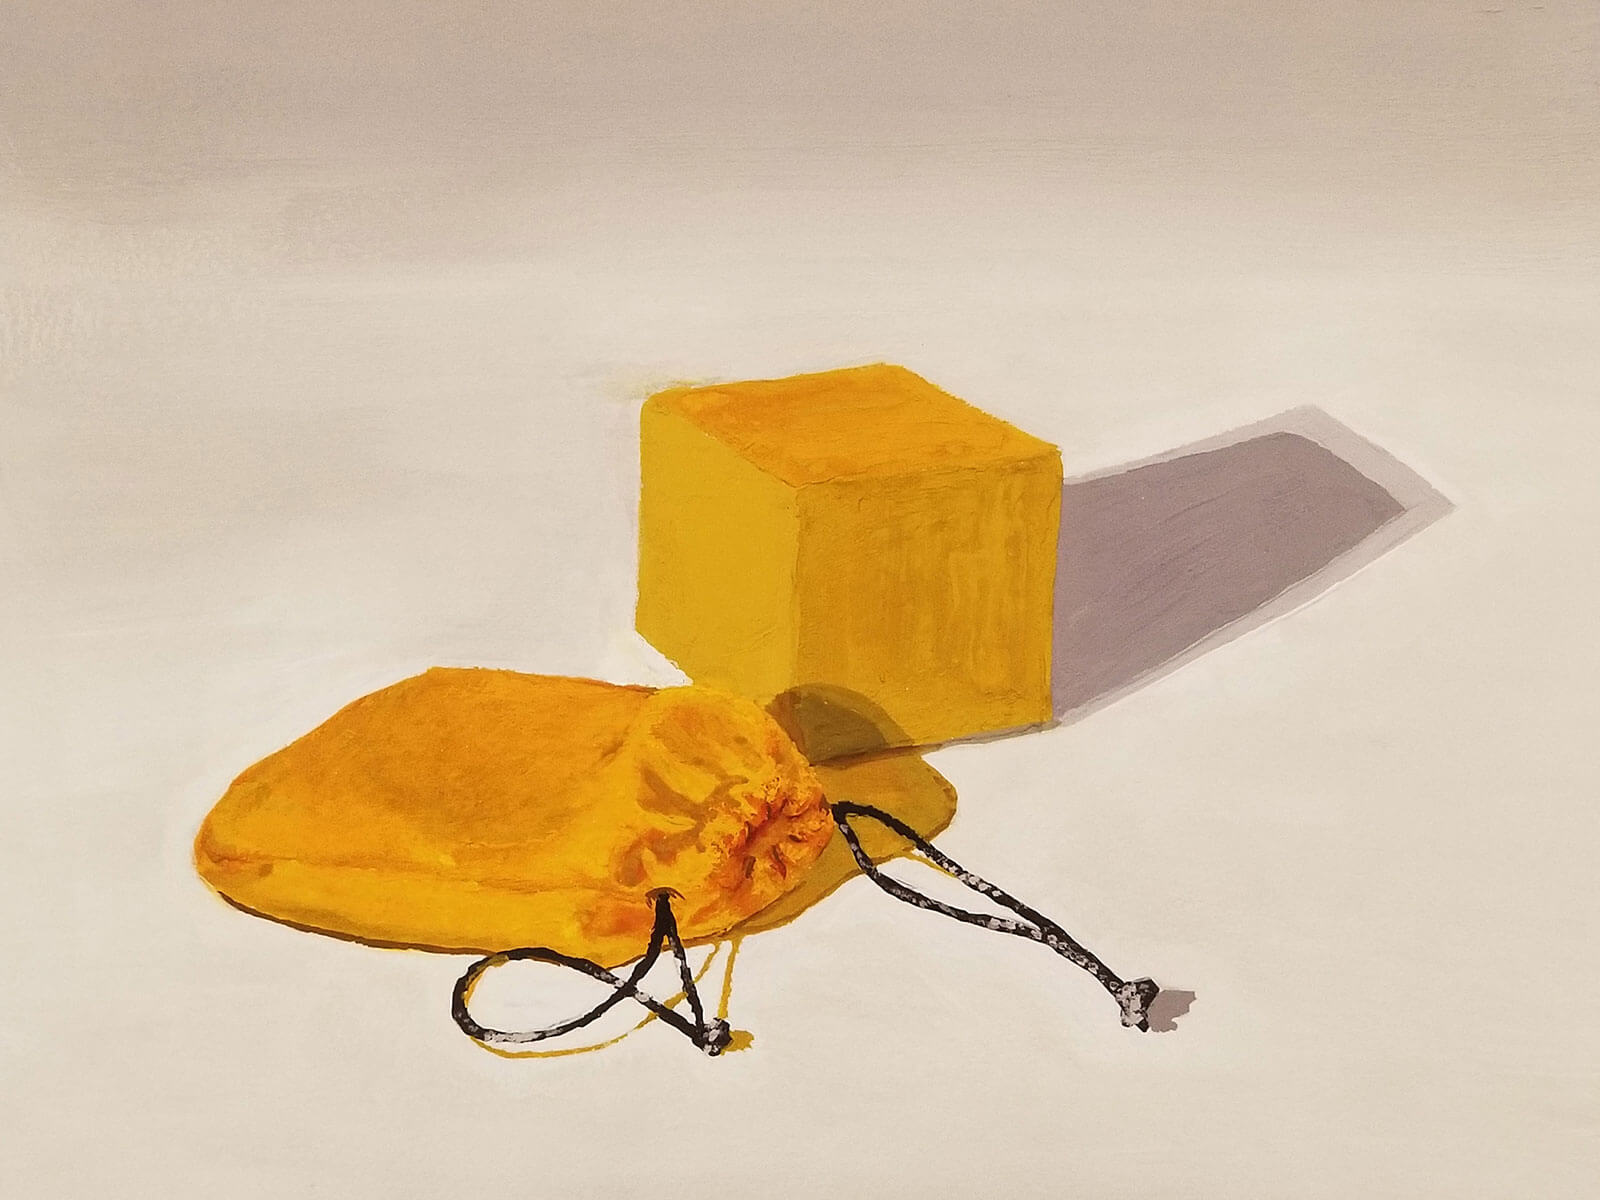 A small yellow block with a cloth pouch